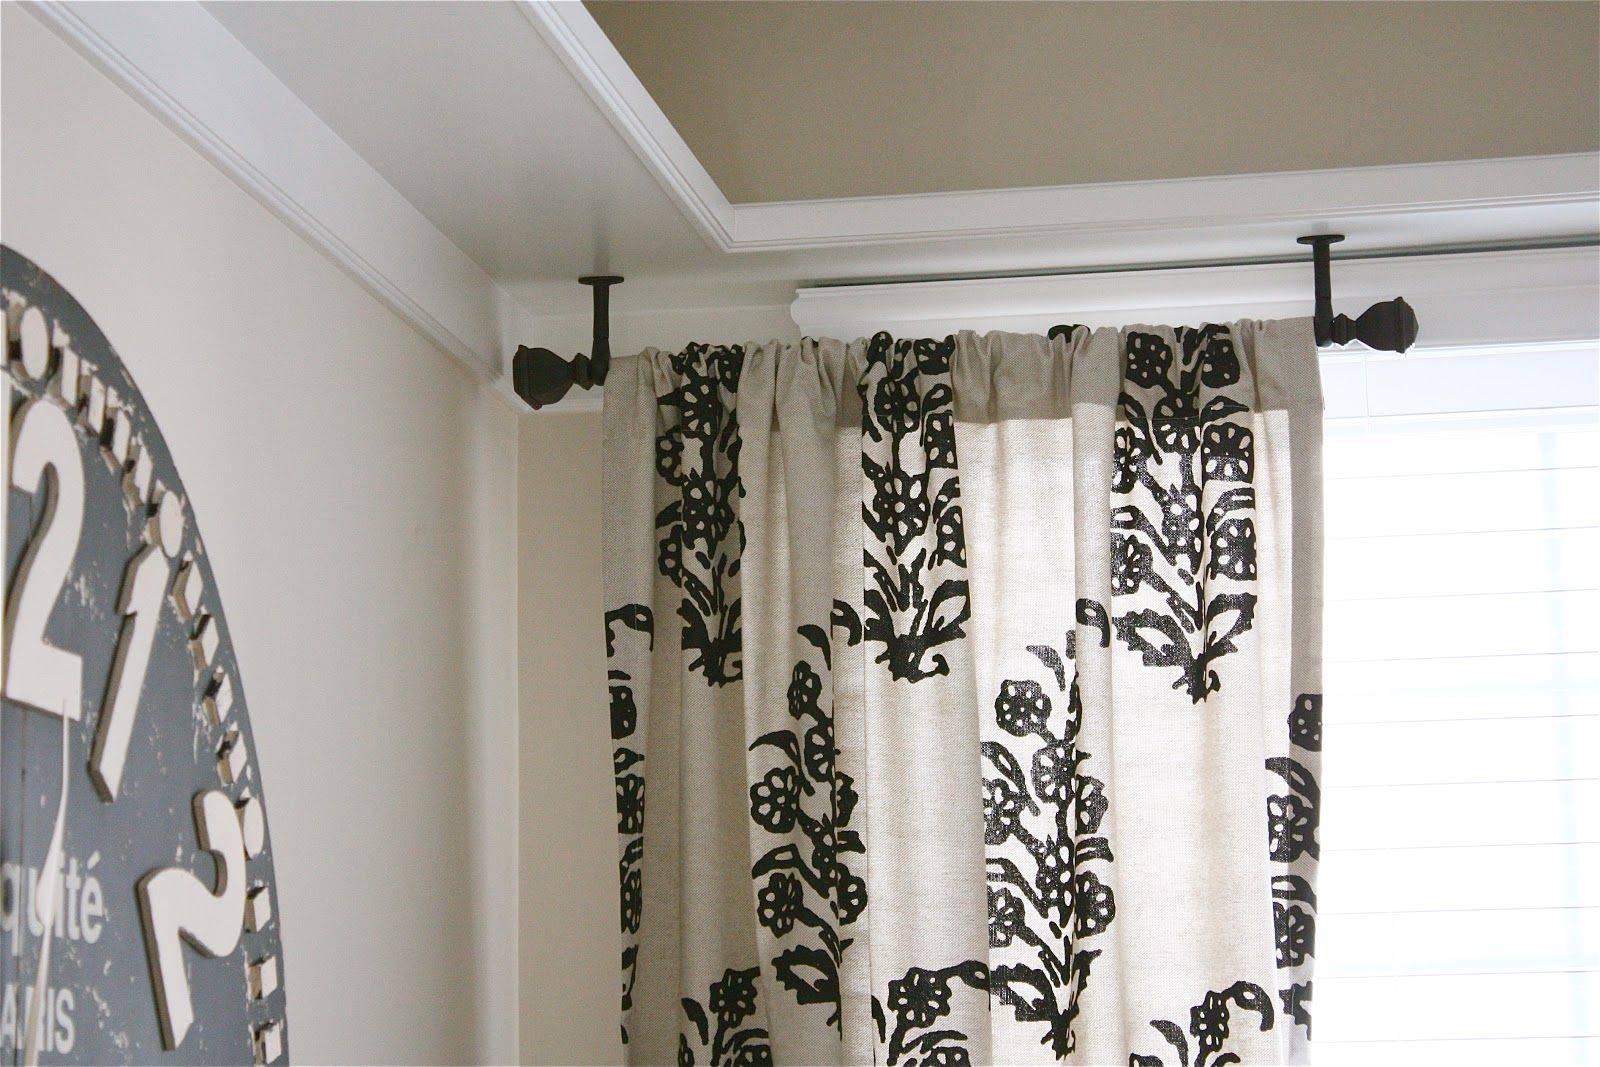 Mounting Curtain Rods Partial Rods And Visual Flow Effective Partial Black Ceiling